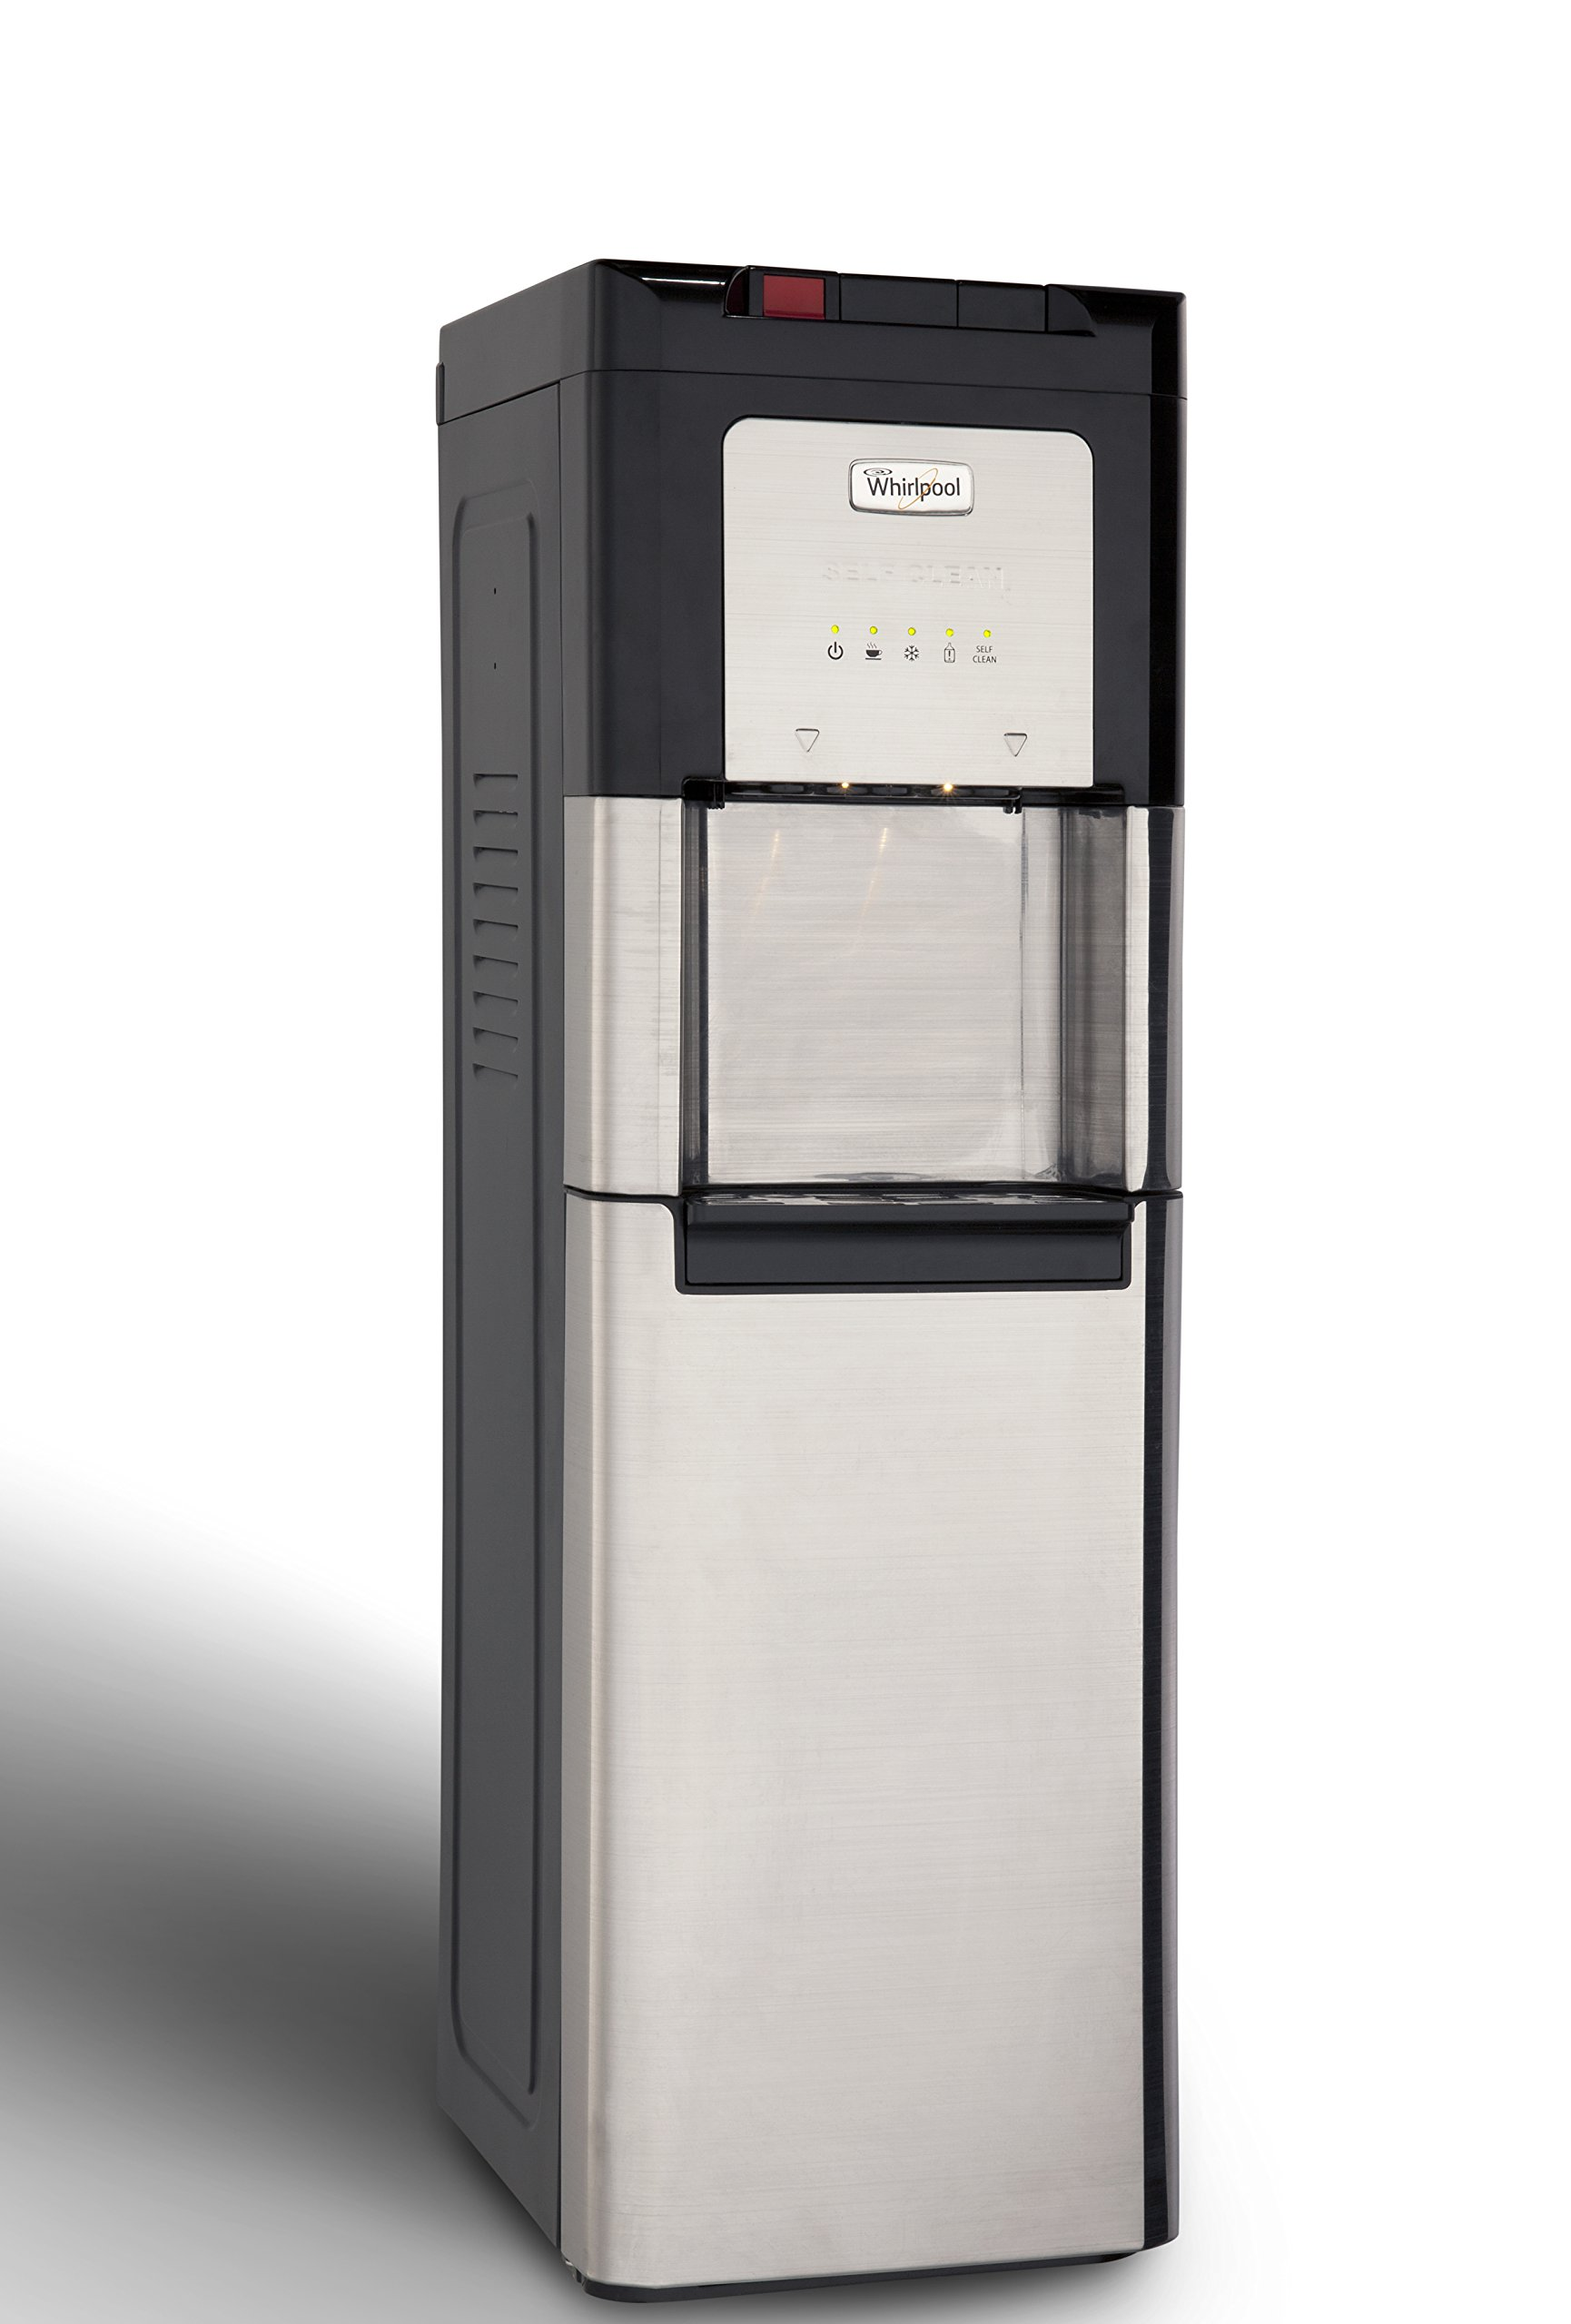 Whirlpool 8LIECH-SC-SSF-P5W Self Cleaning Stainless Bottom Load Water Cooler with LED indicators,40.5in x 12.6in x 15in